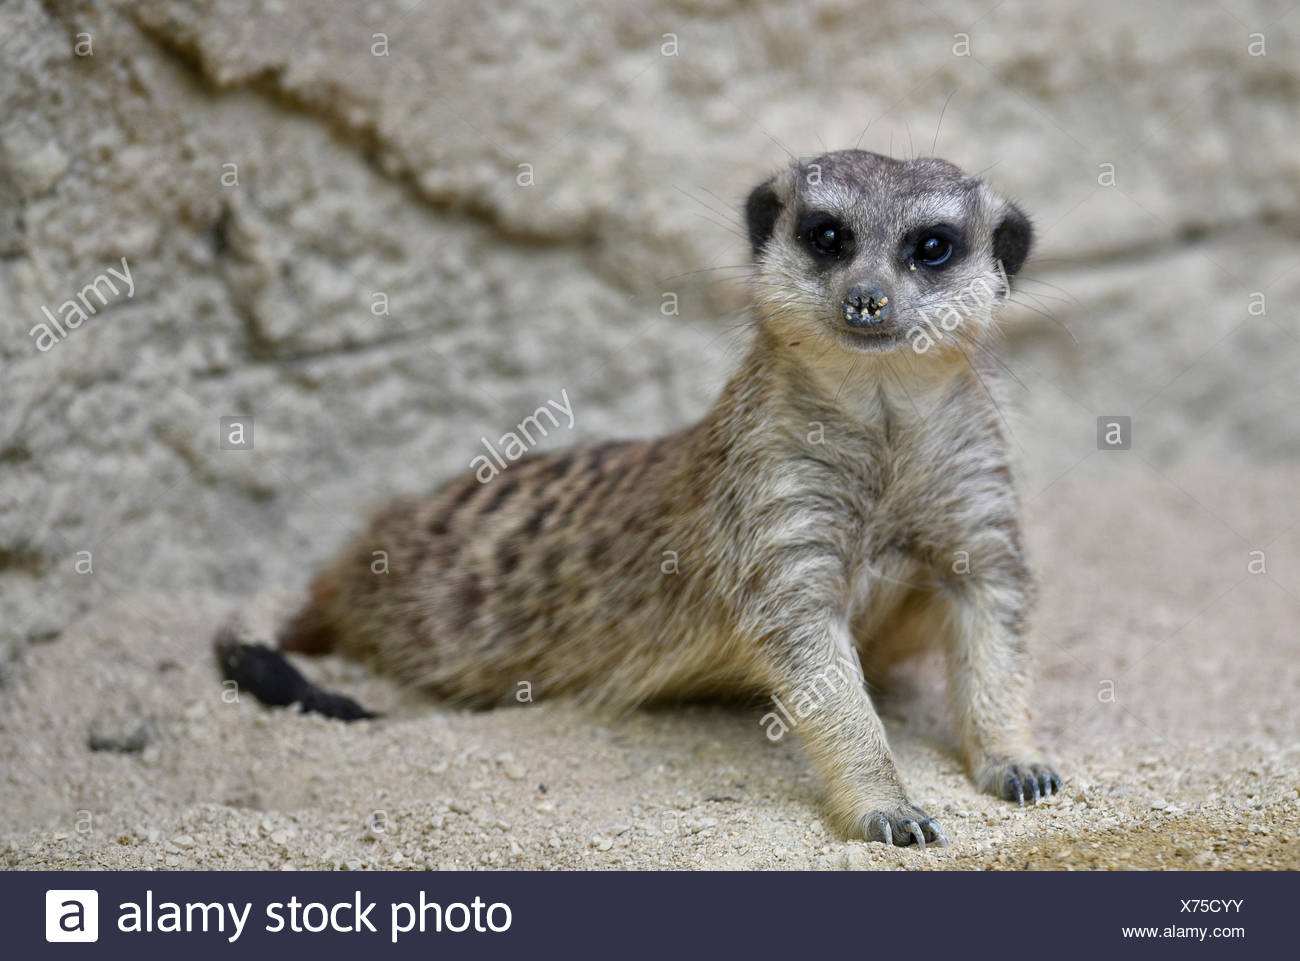 Meerkat (Suricata suricatta), young animal, curious, captive - Stock Image